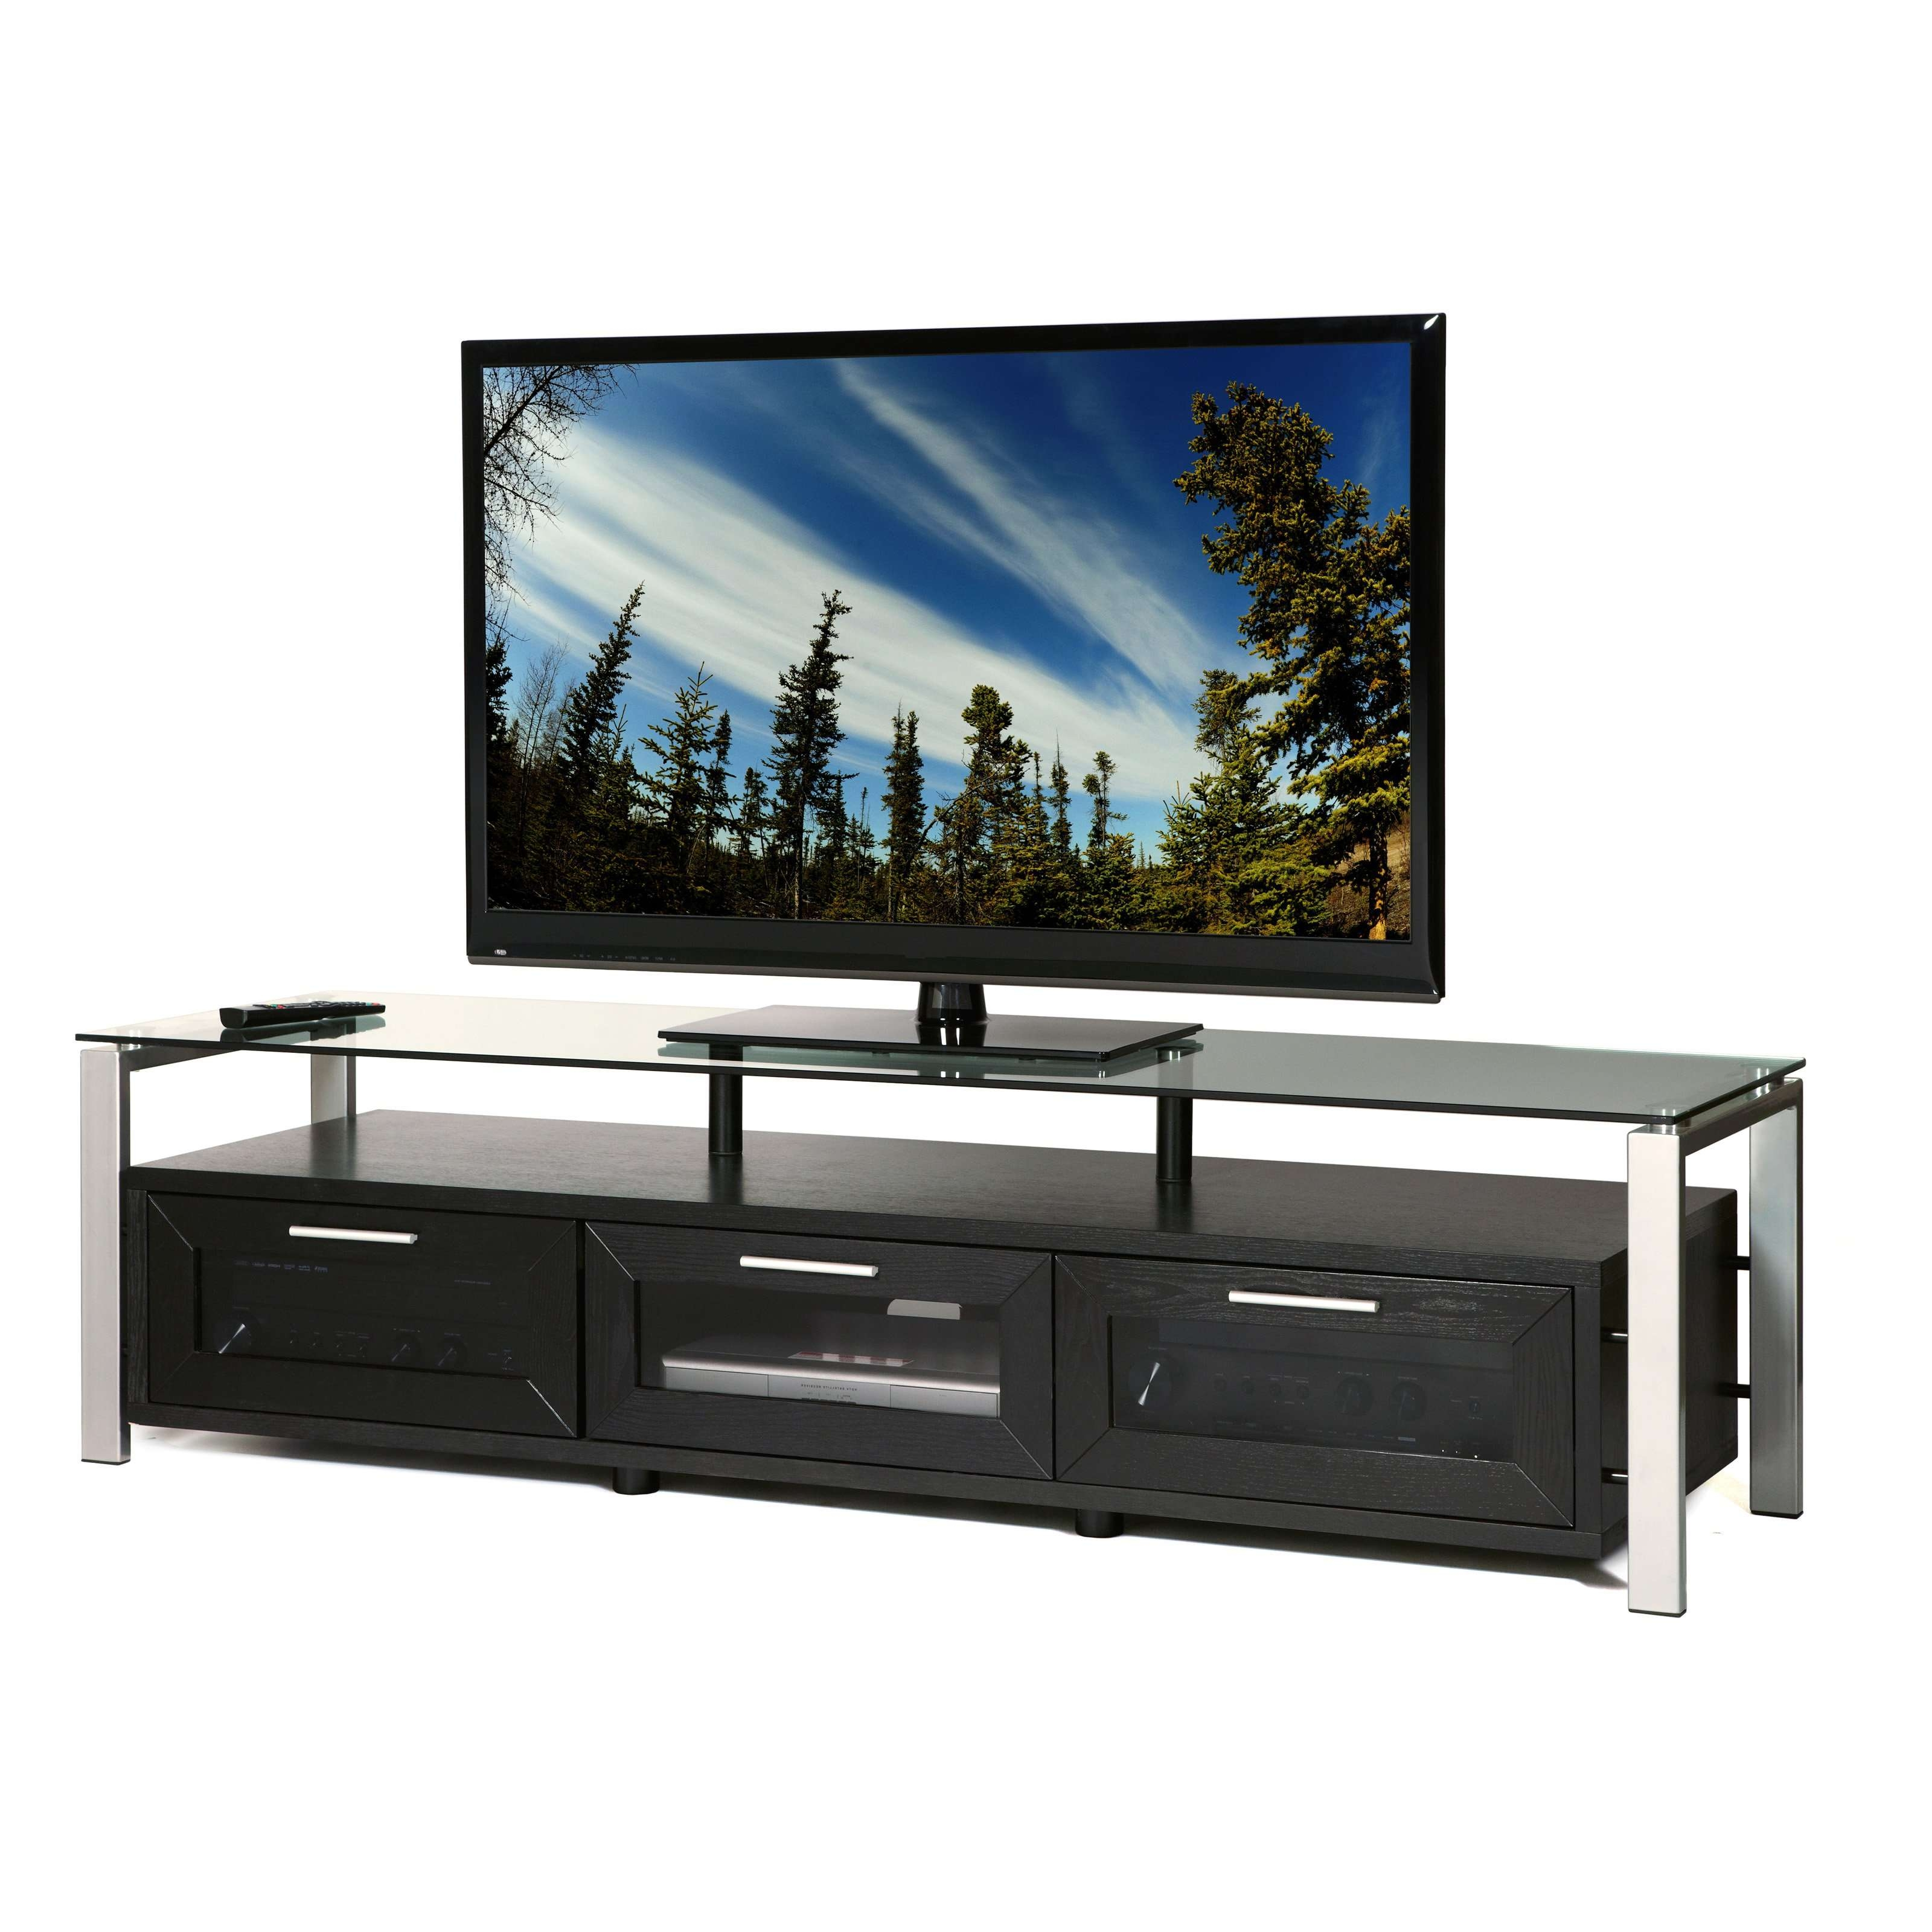 Trend 80 Inch Tv Stands 67 For Simple Home Decoration Ideas With Intended For 80 Inch Tv Stands (View 5 of 15)